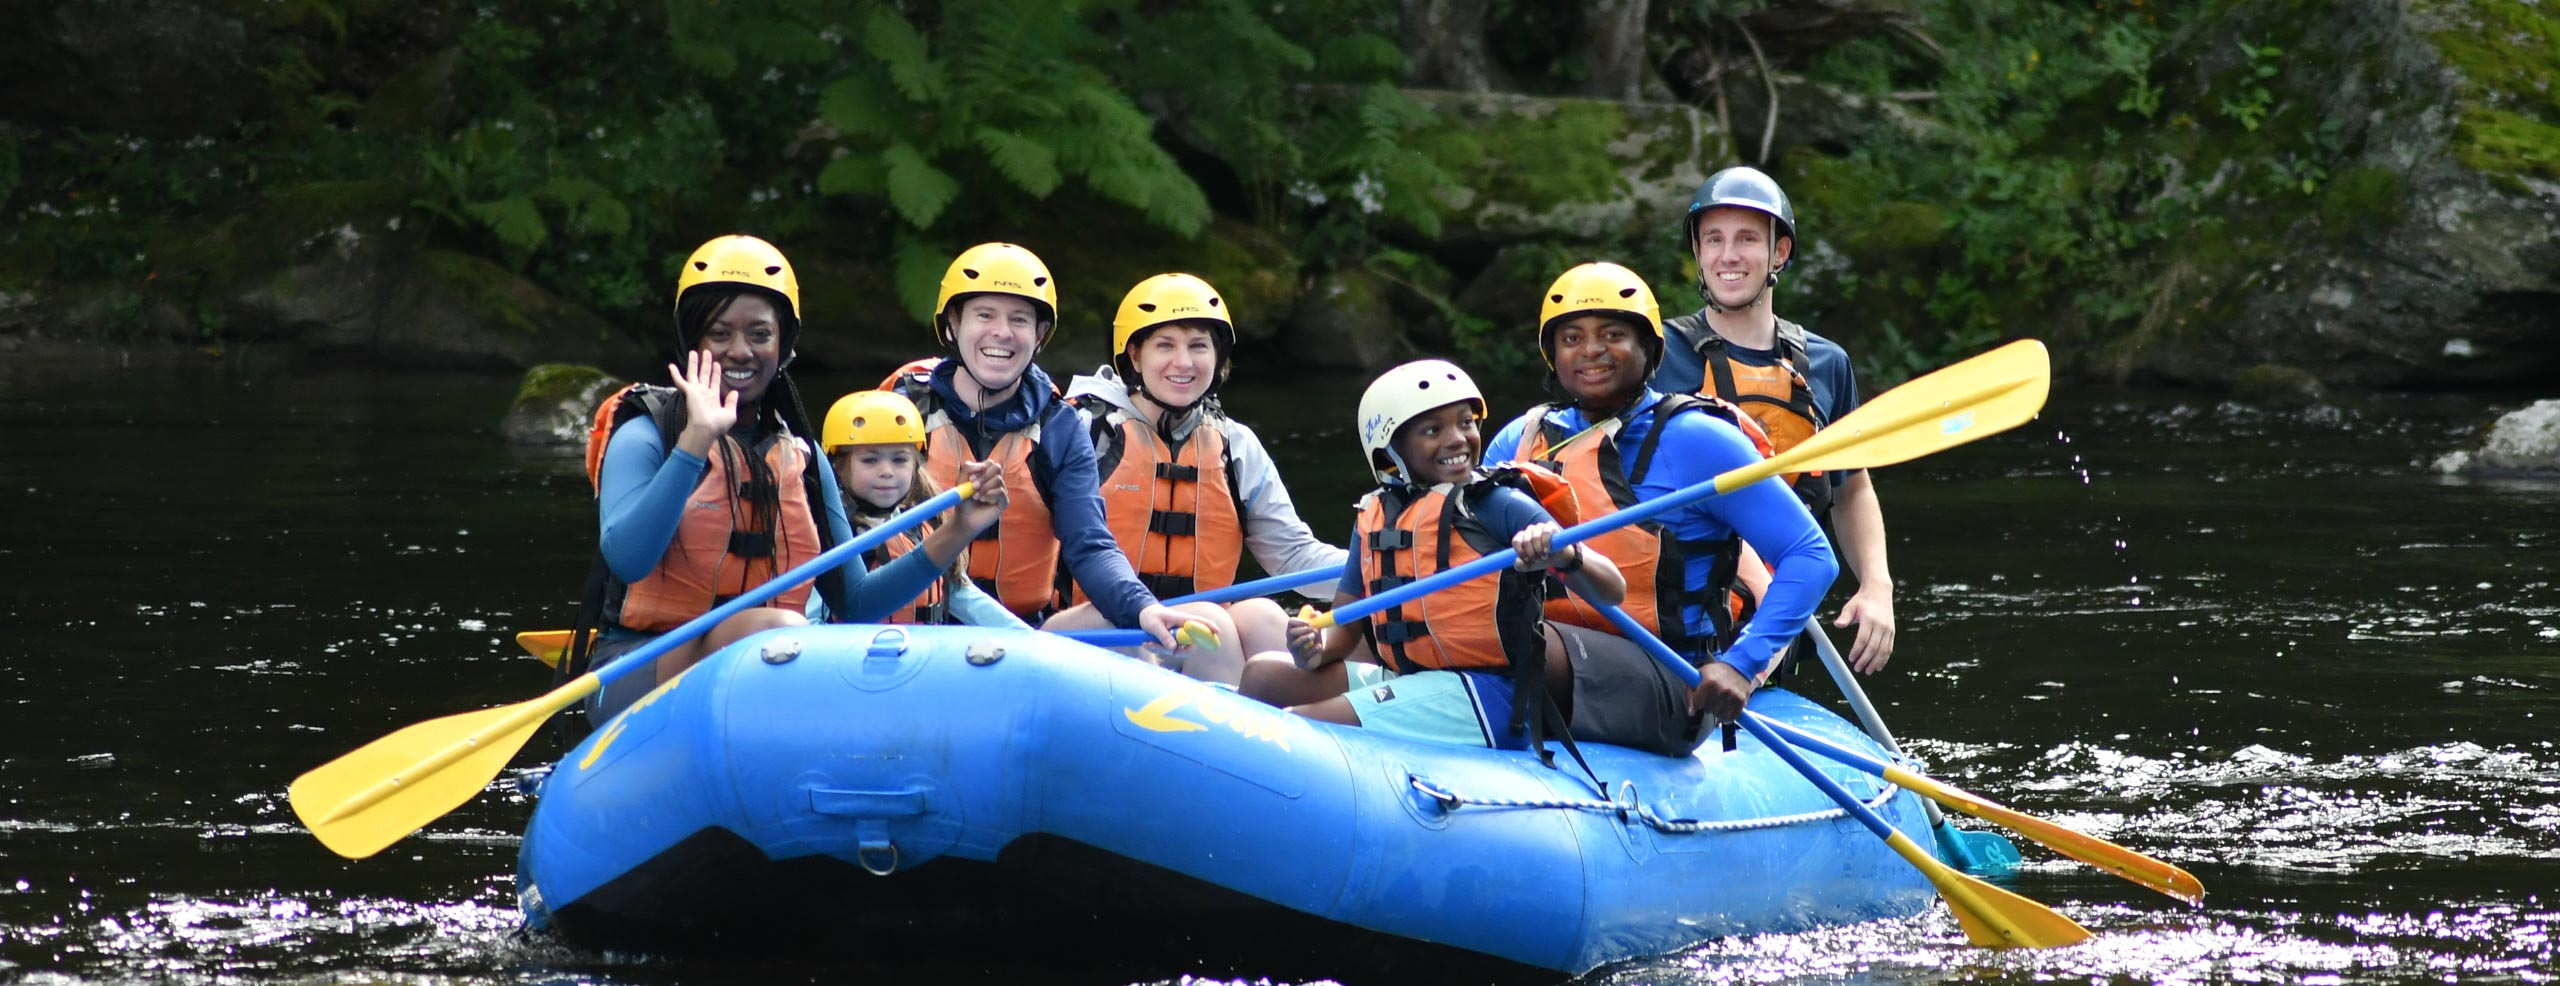 A family floating down the river in a raft having a nice time